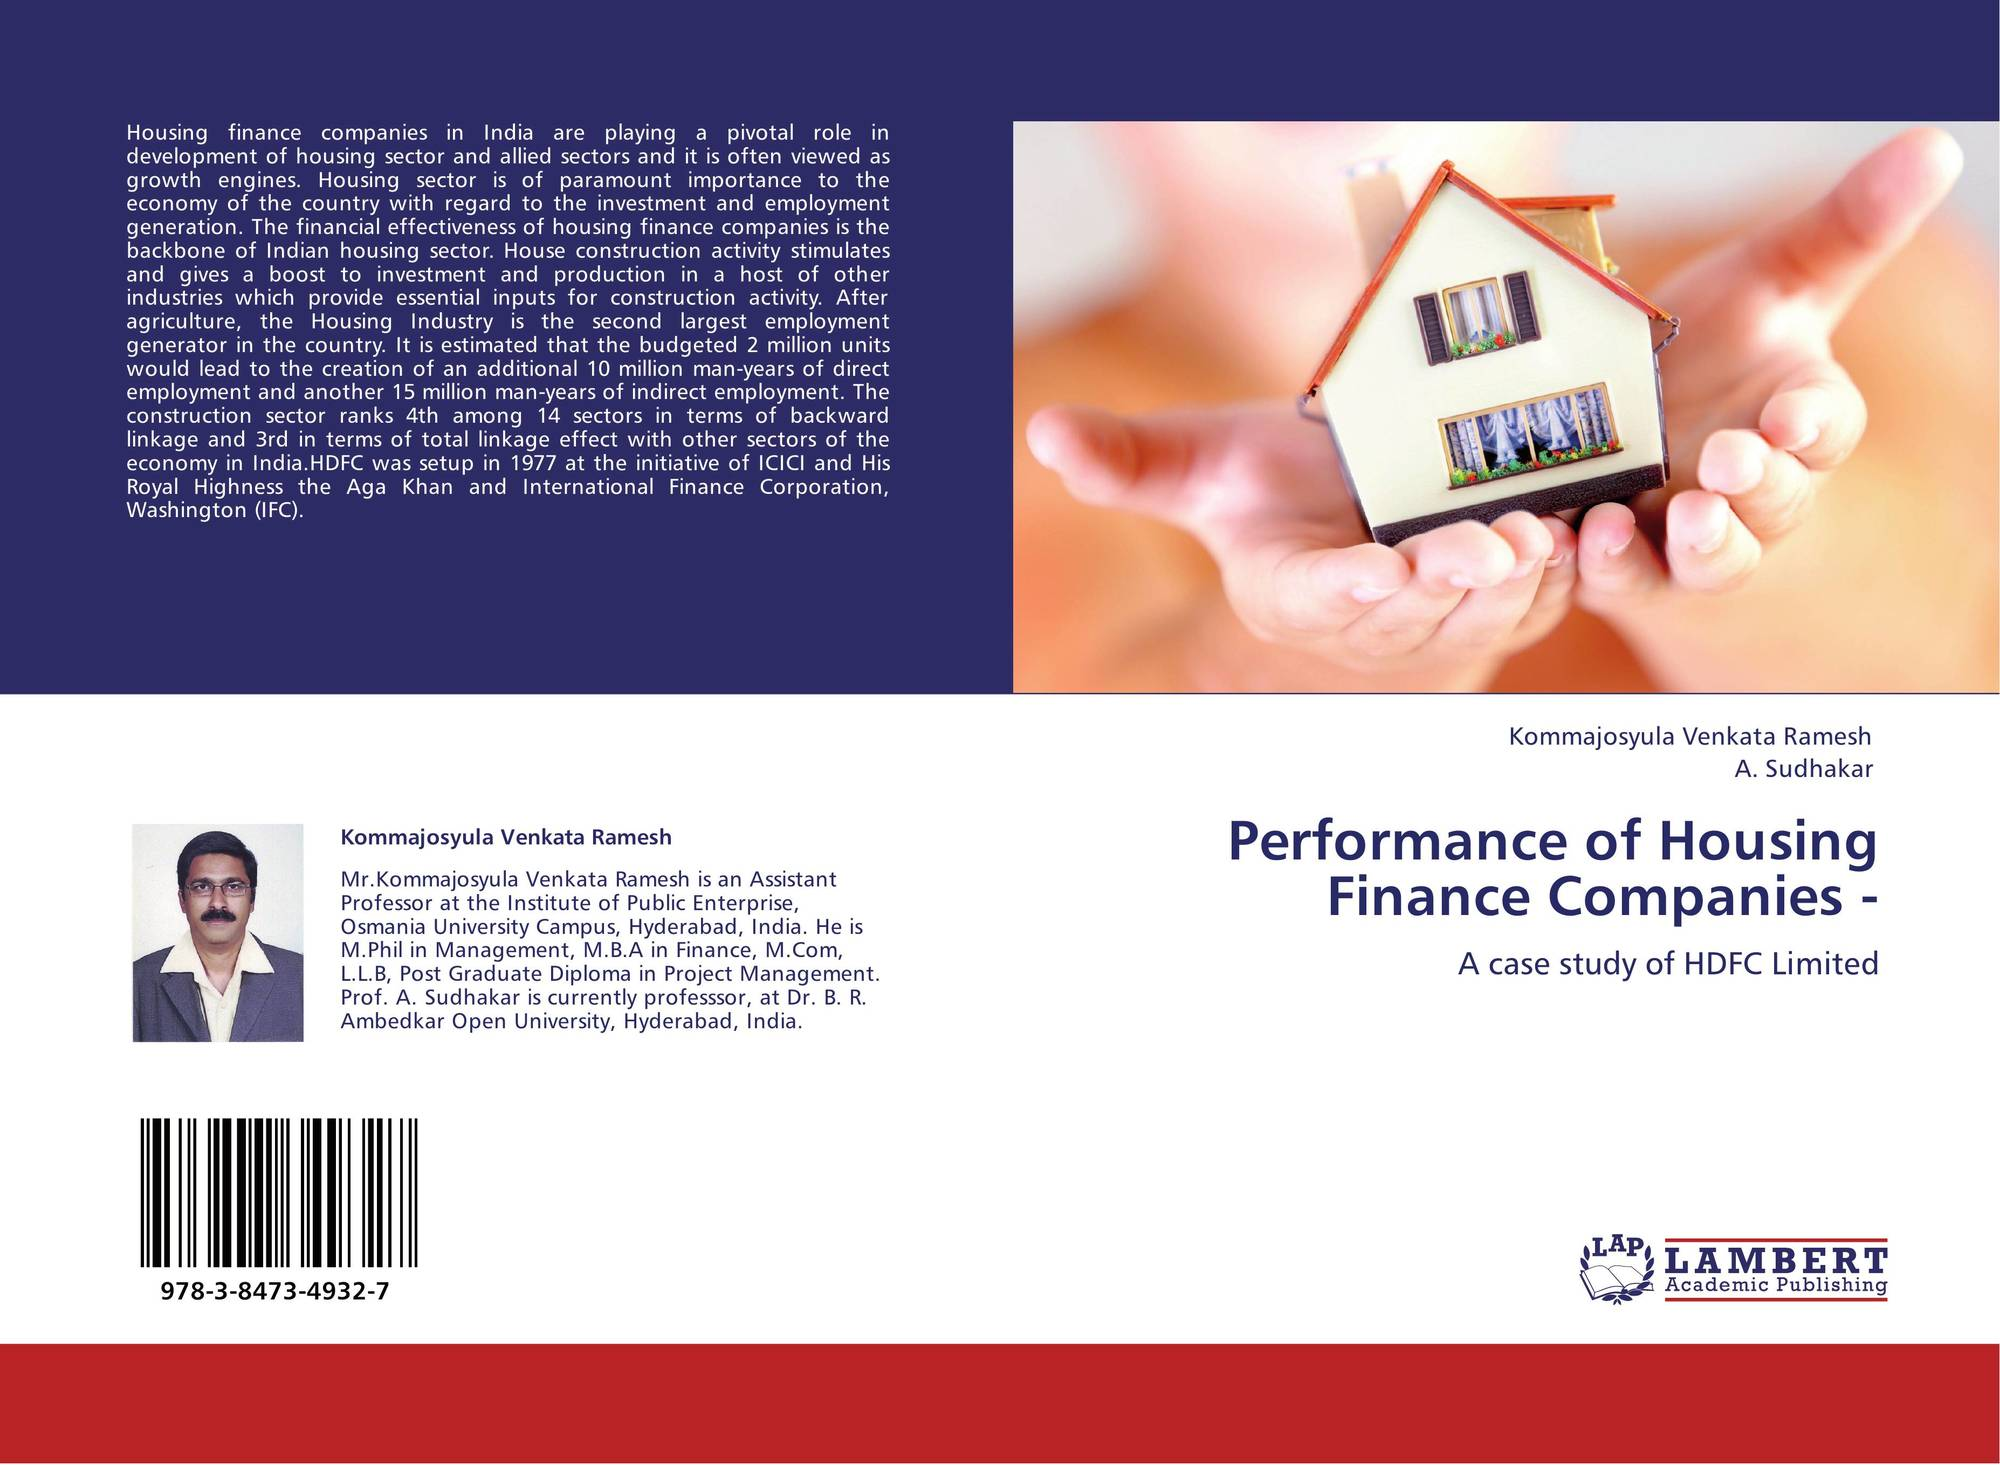 an introduction to the housing finance sector in india